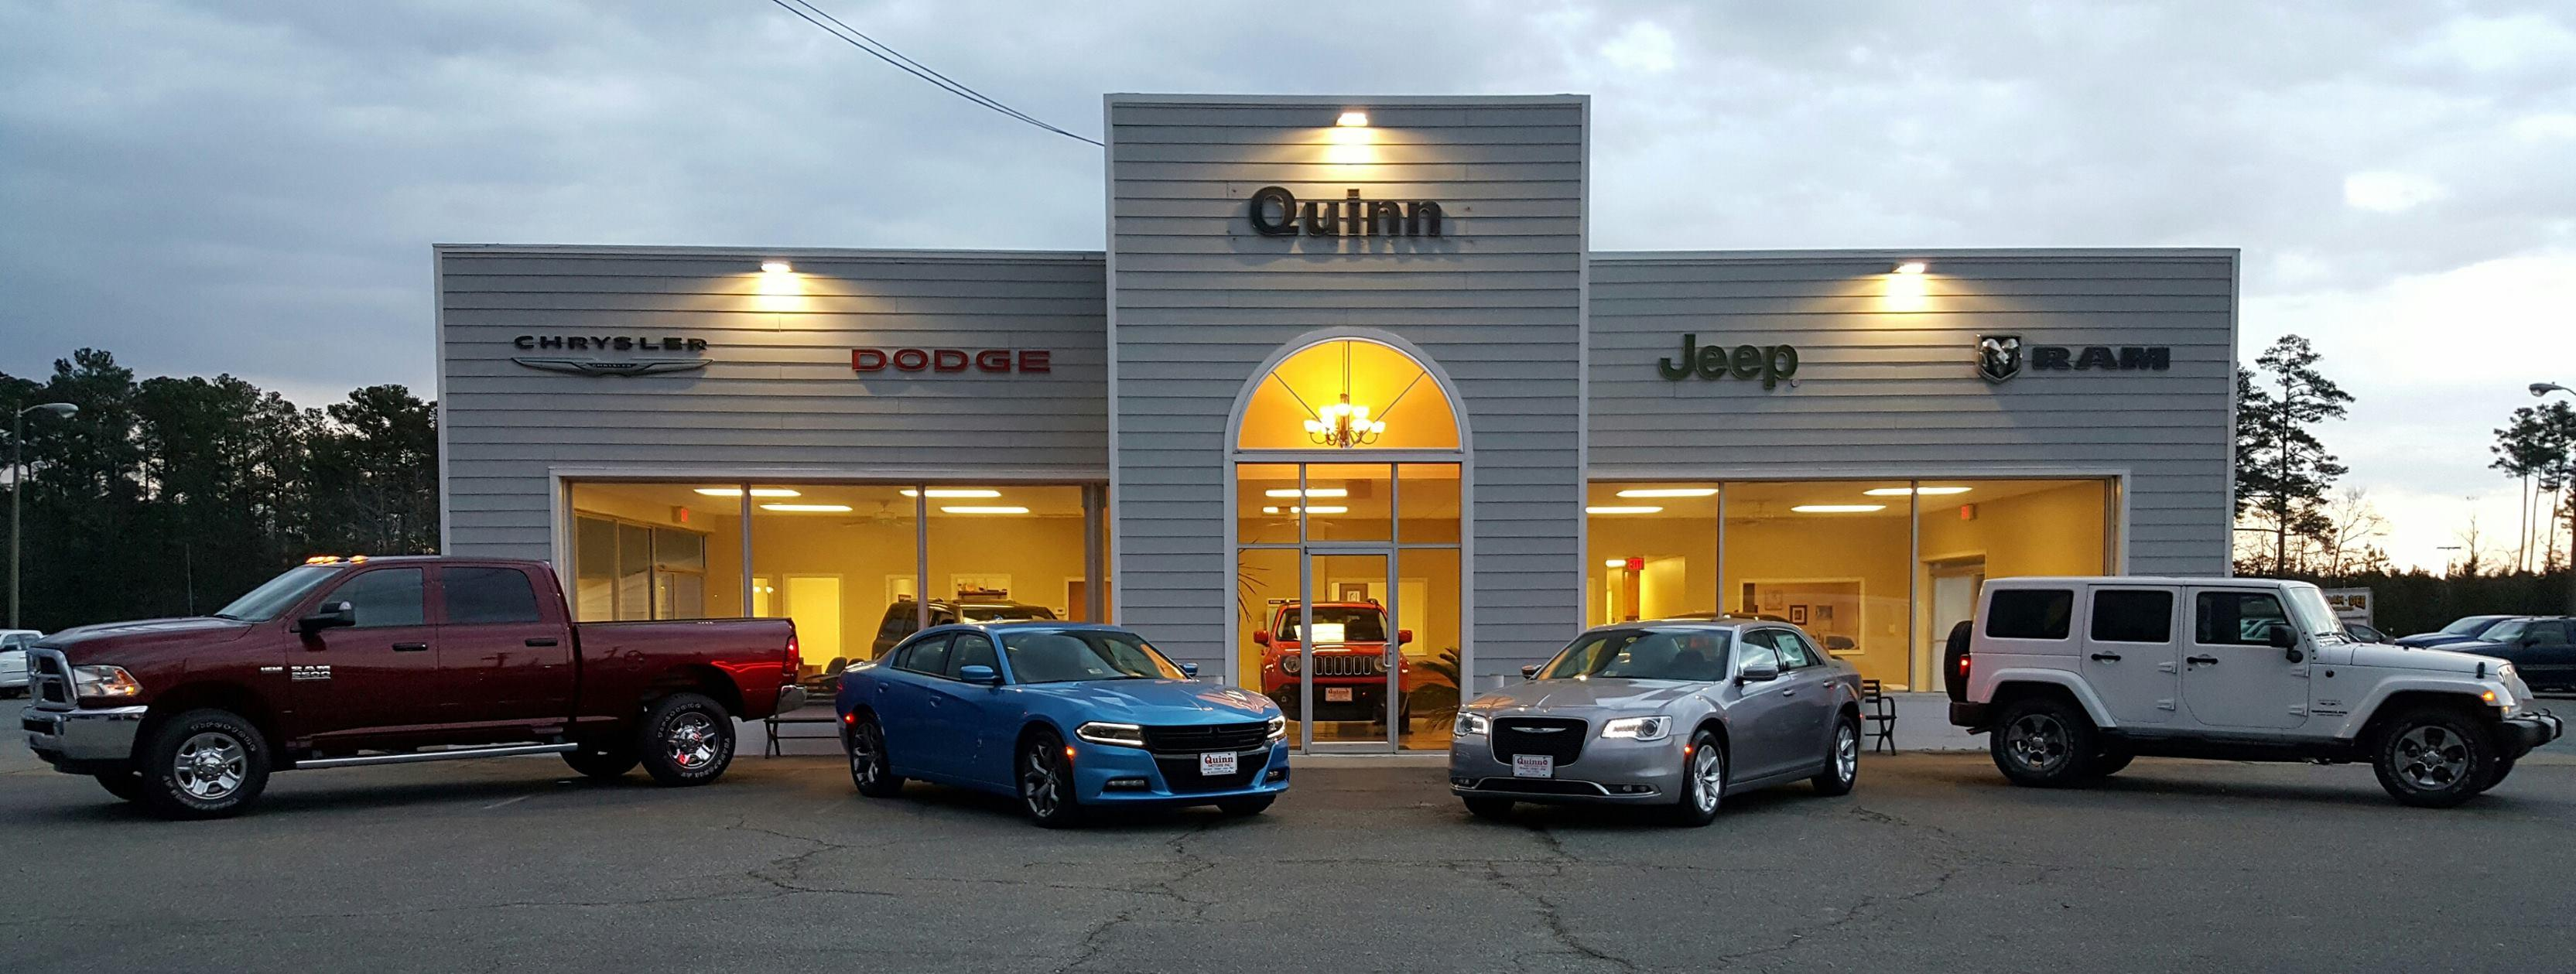 quinn motors in gloucester va 23061